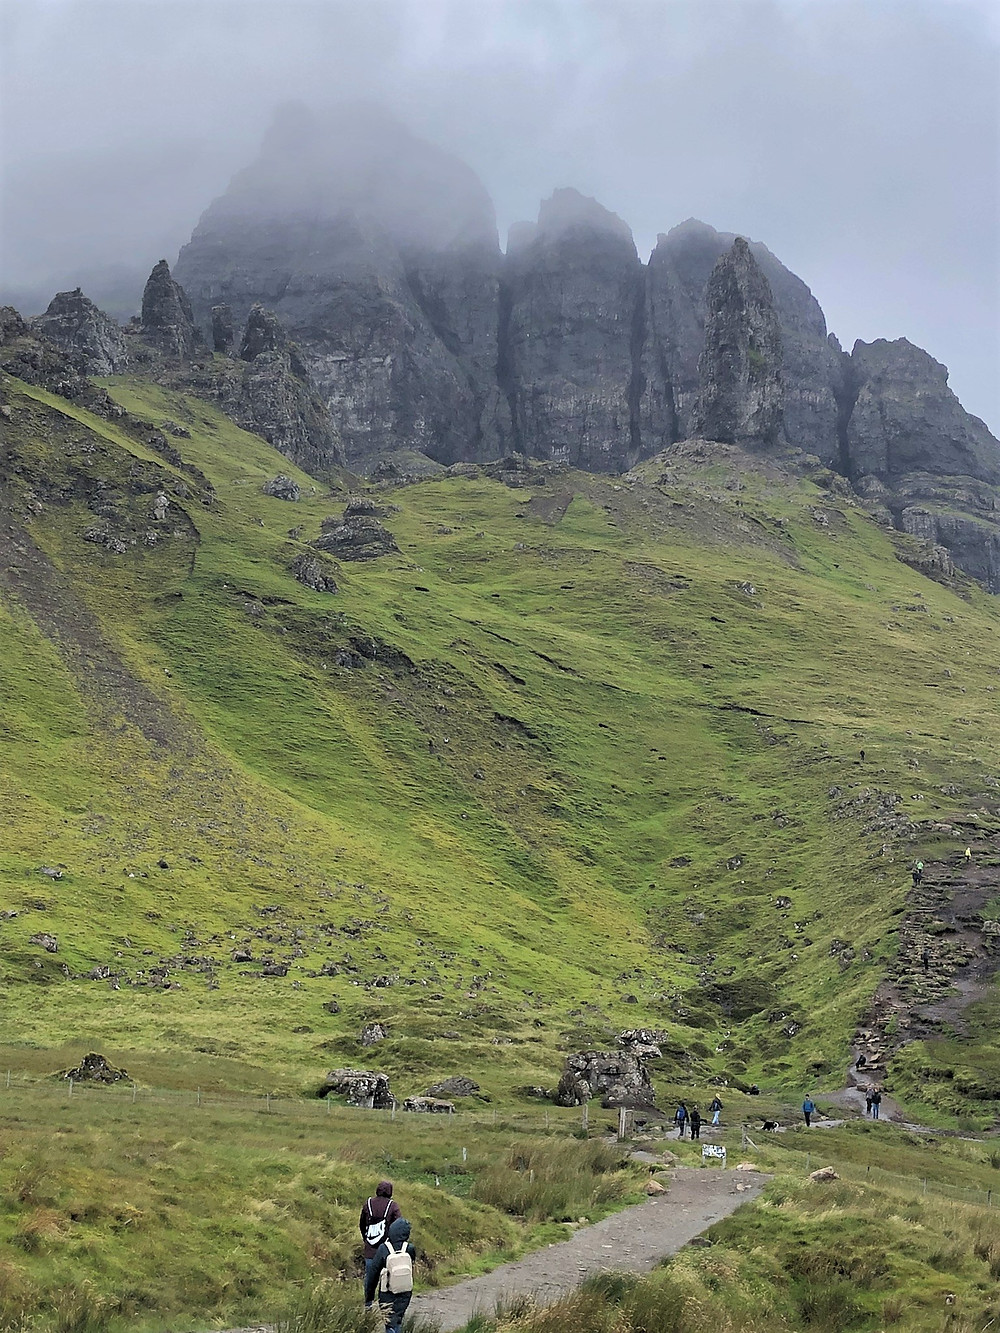 The Old Man of Storr sits atop the Trotternish Ridge in the northeastern region of the Isle of Skye